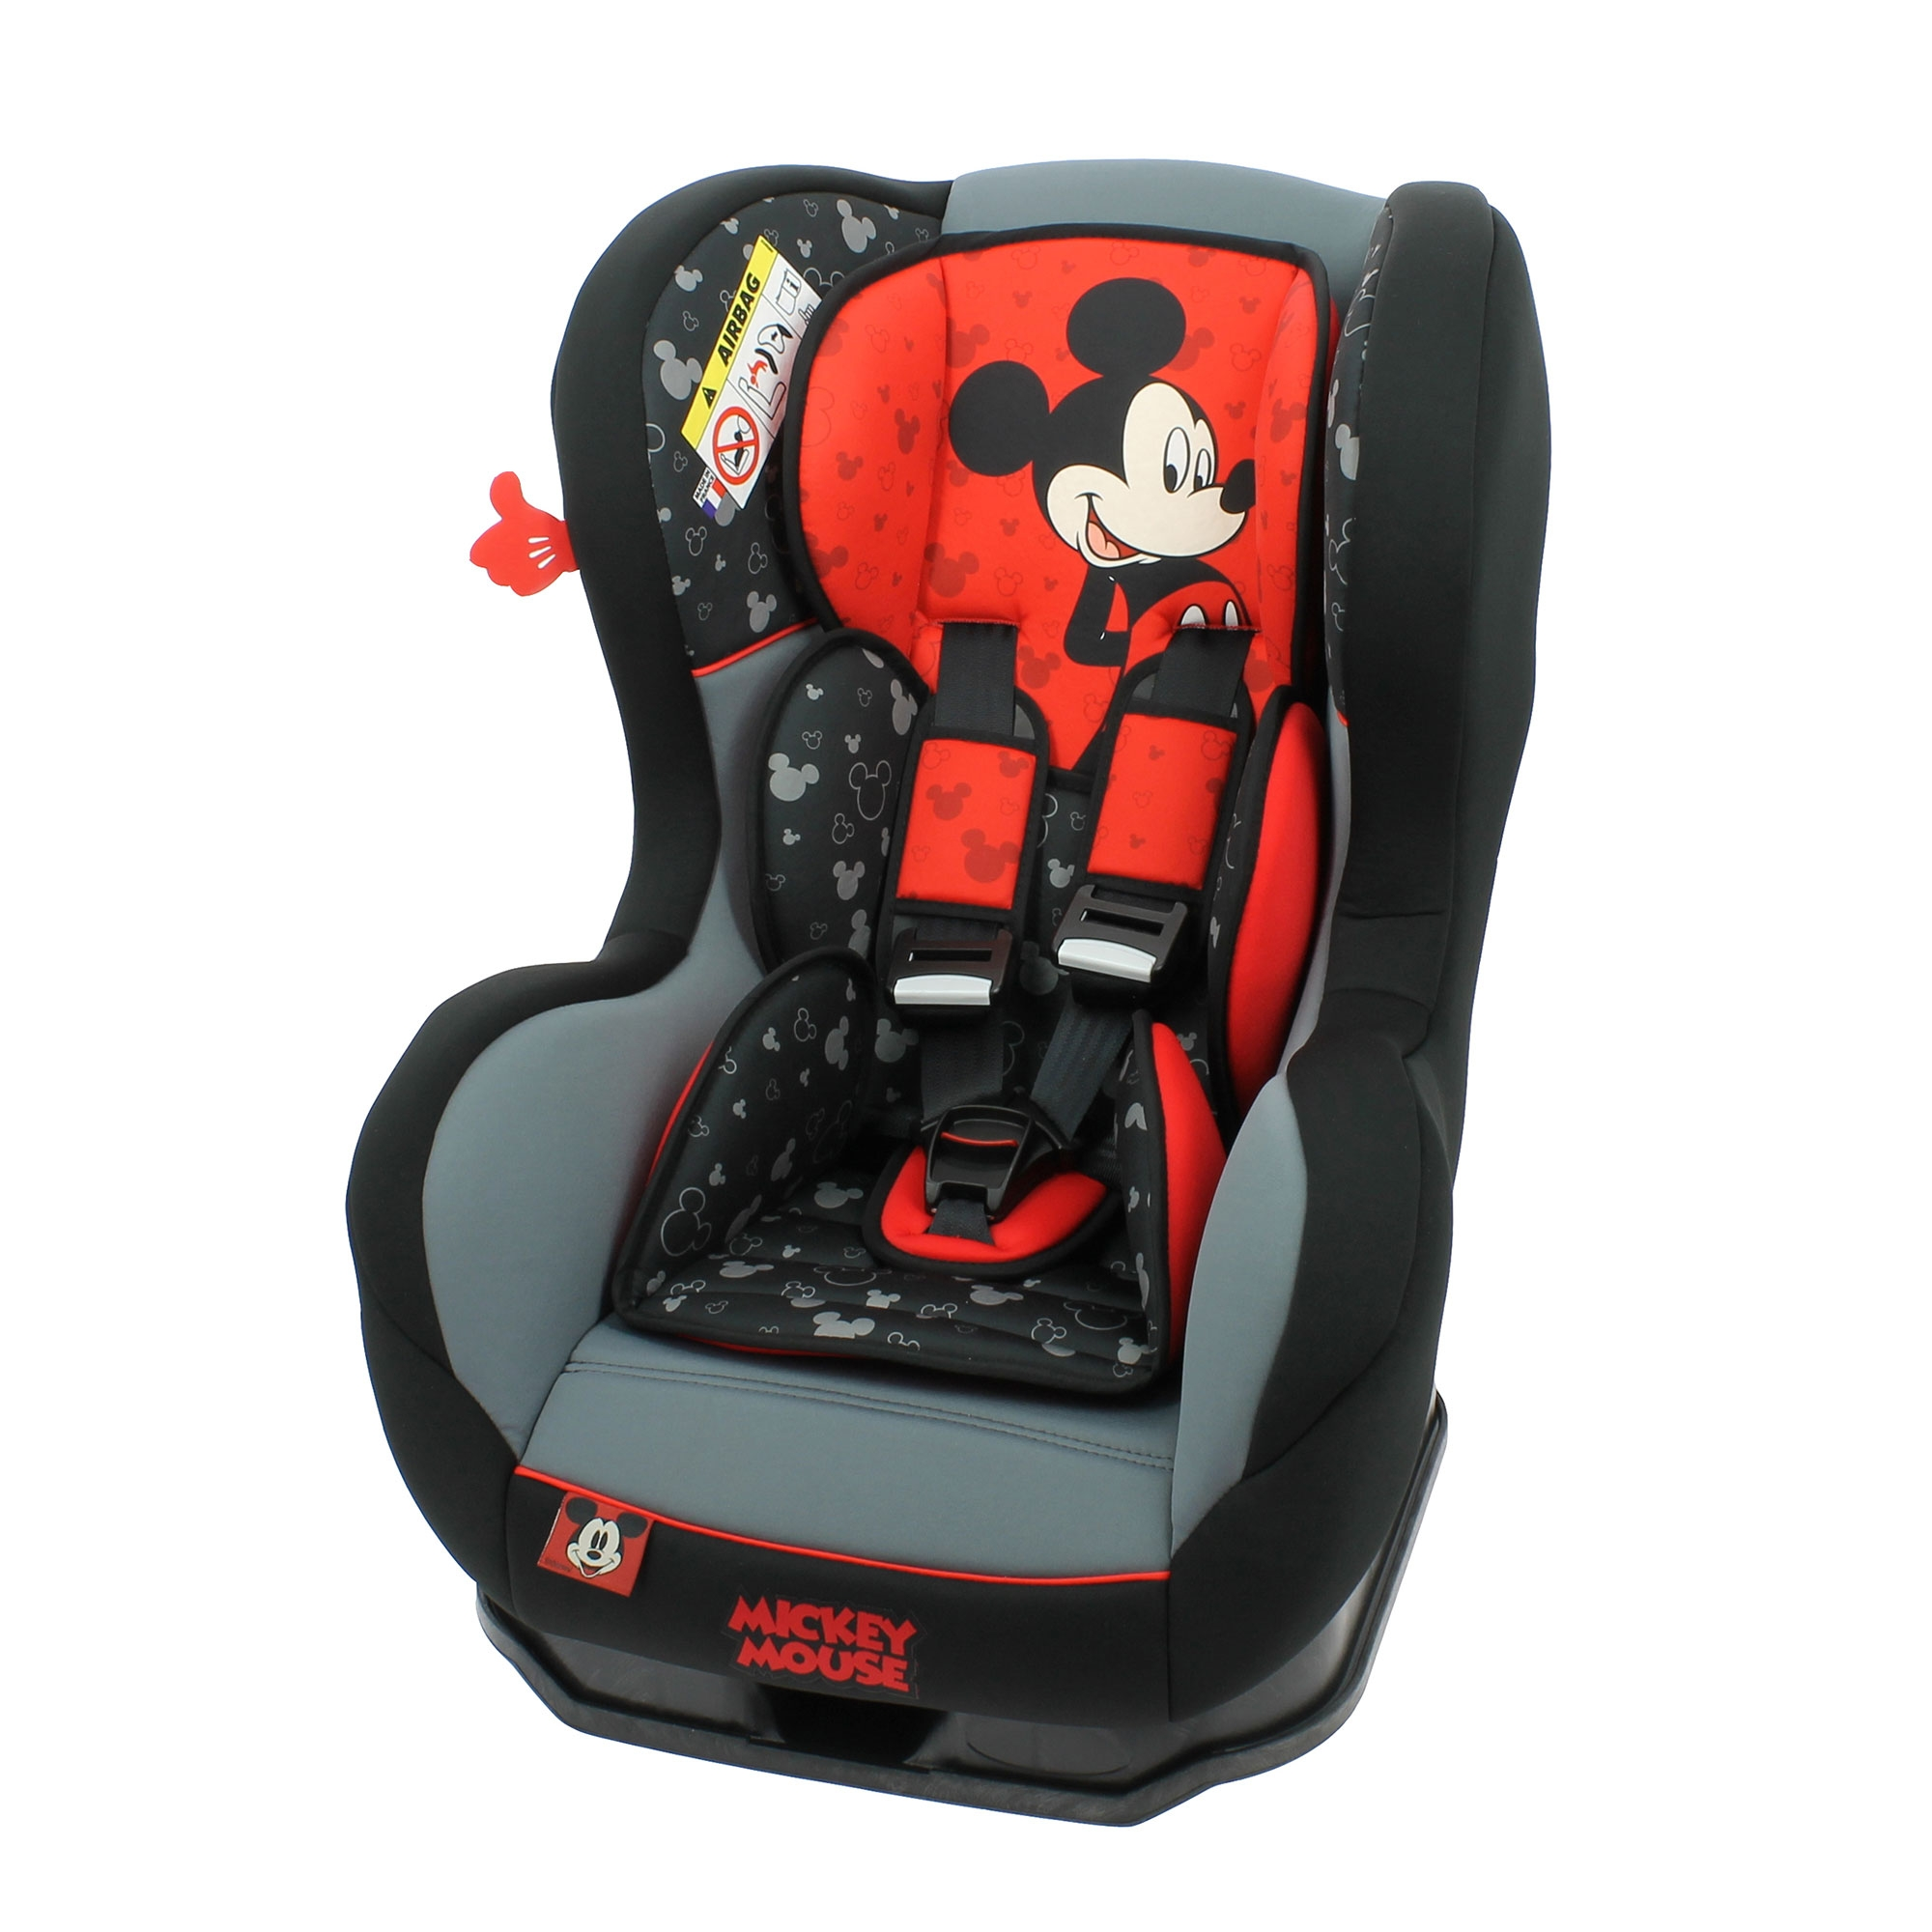 Do I Need To Pack A Car Seat For Disney?